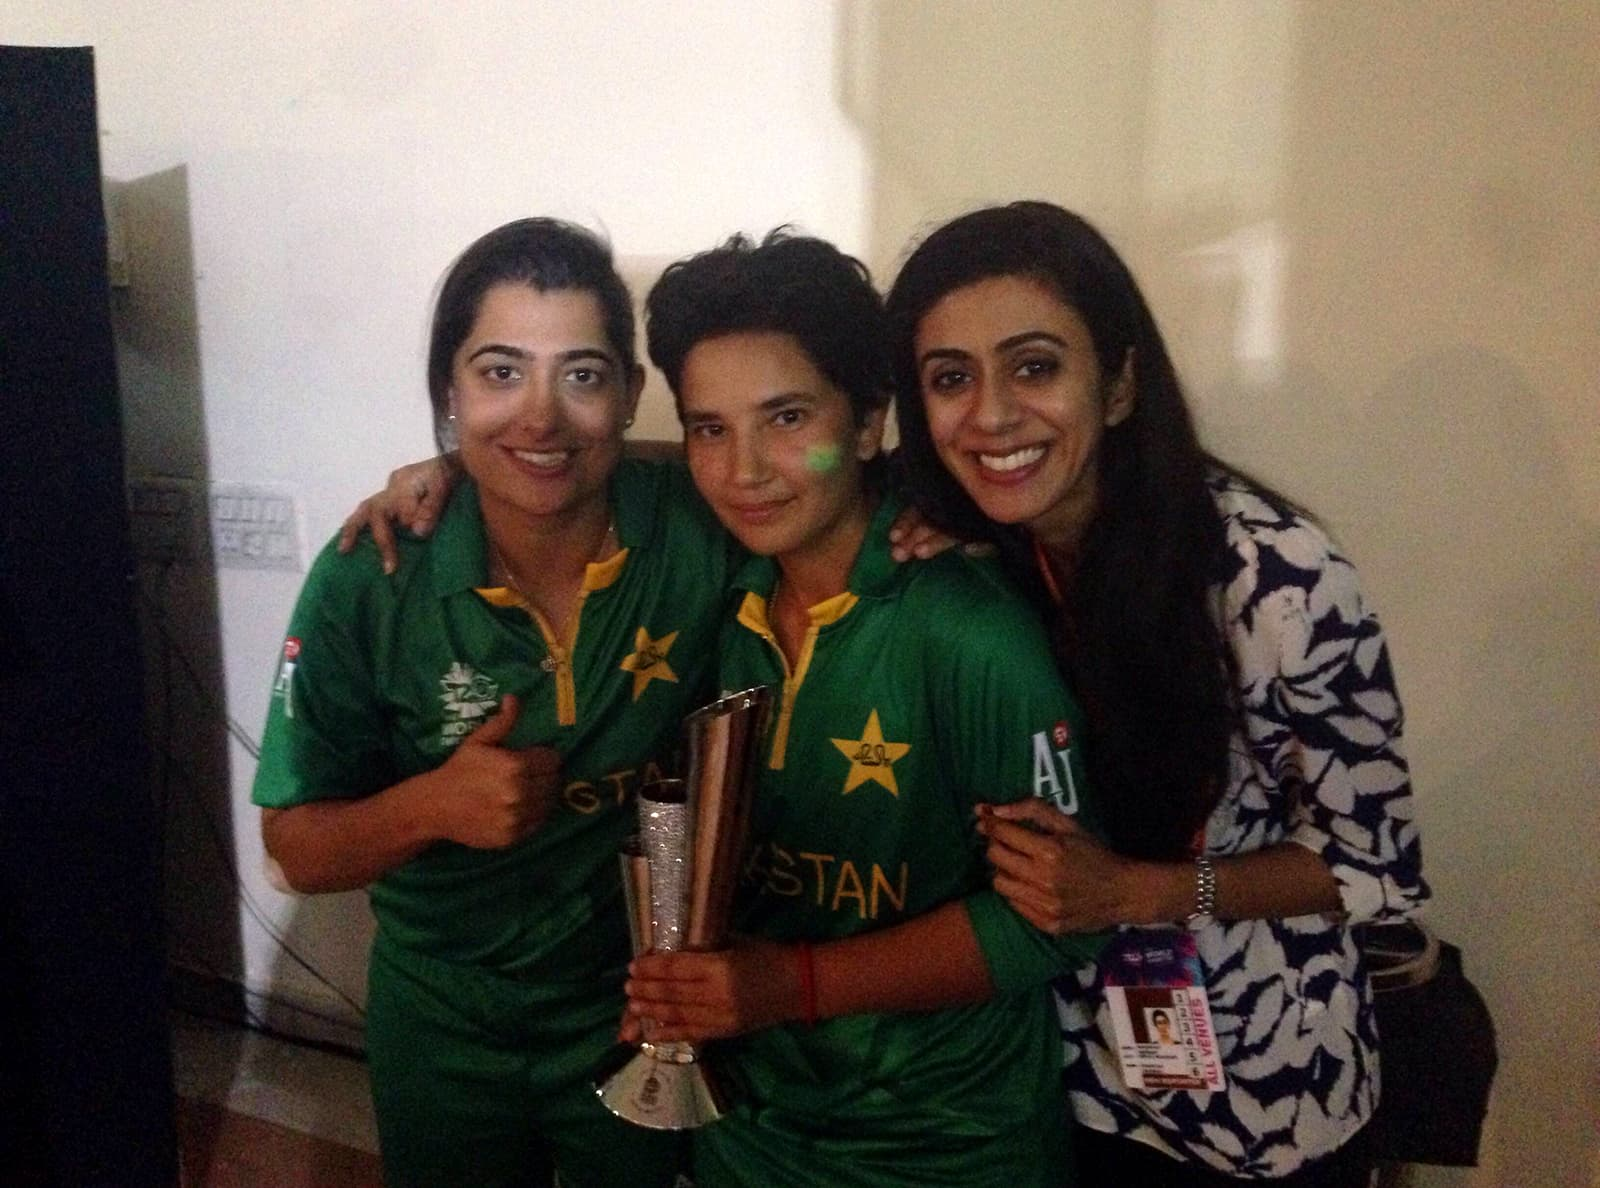 With Captain Sana Mir and Player of the Match Anam Amin. Author provided.